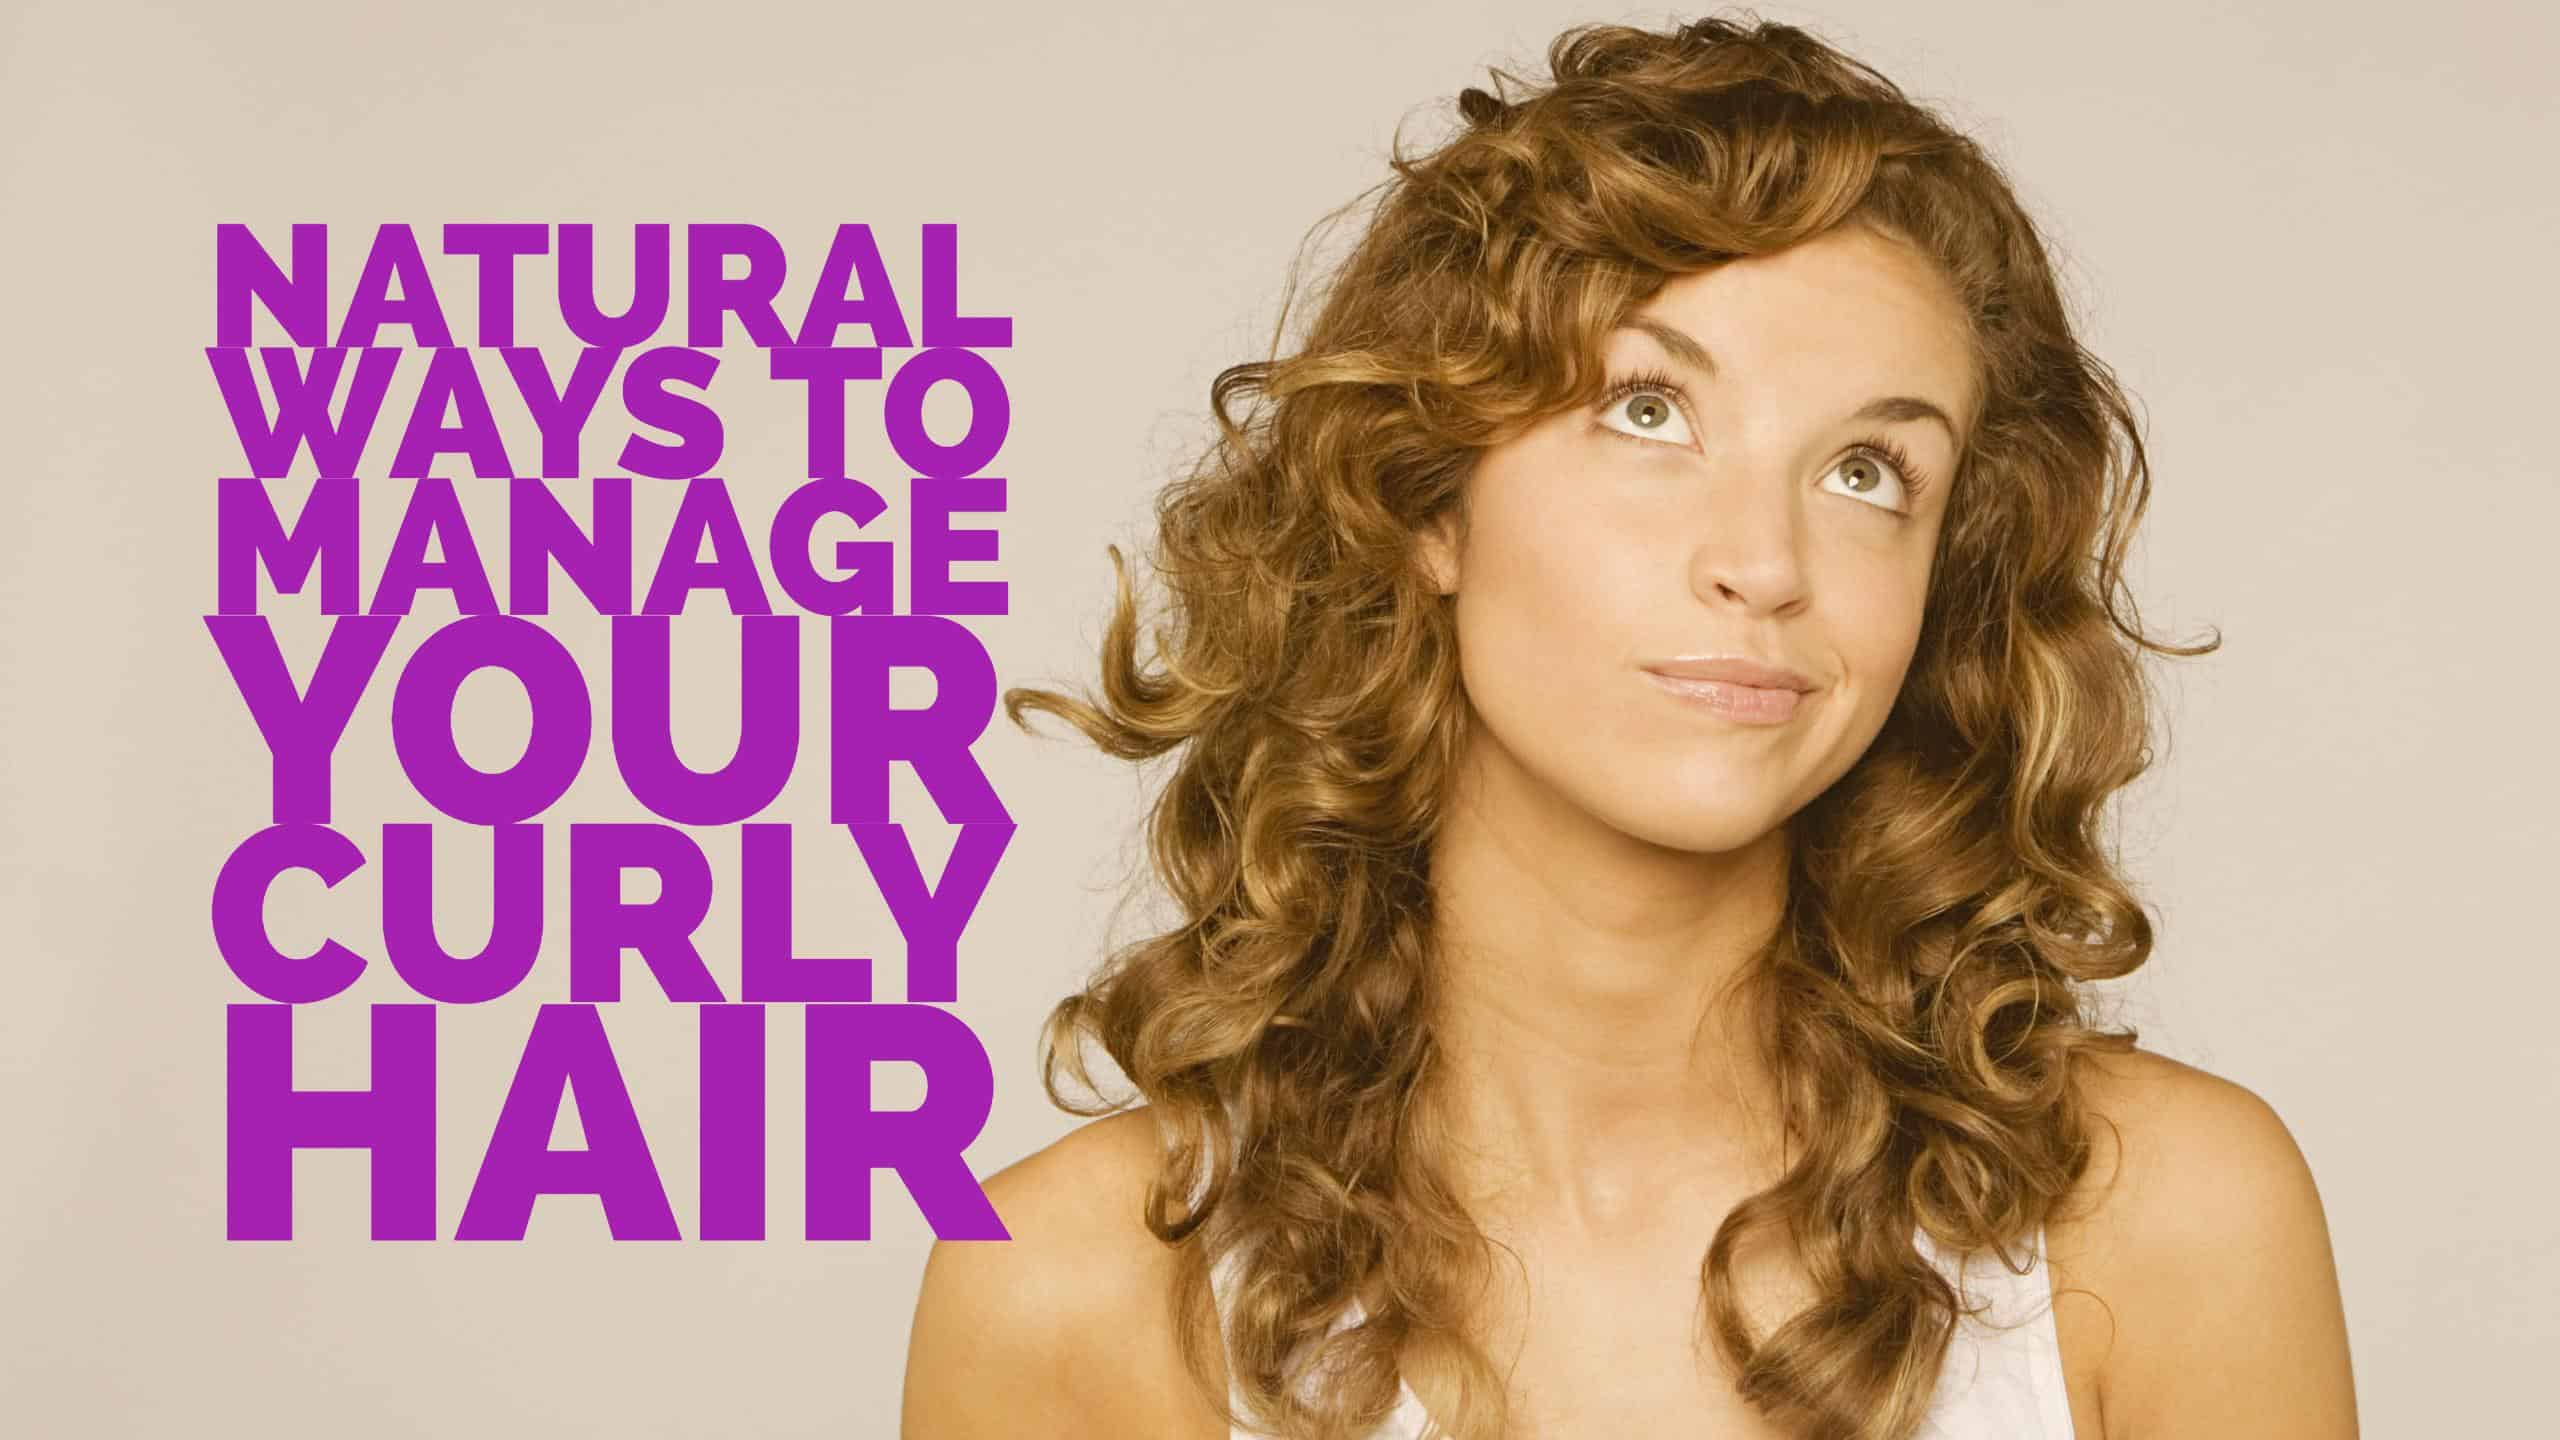 Natural Ways To Curl Your Hair Natural Ways To Manage Your